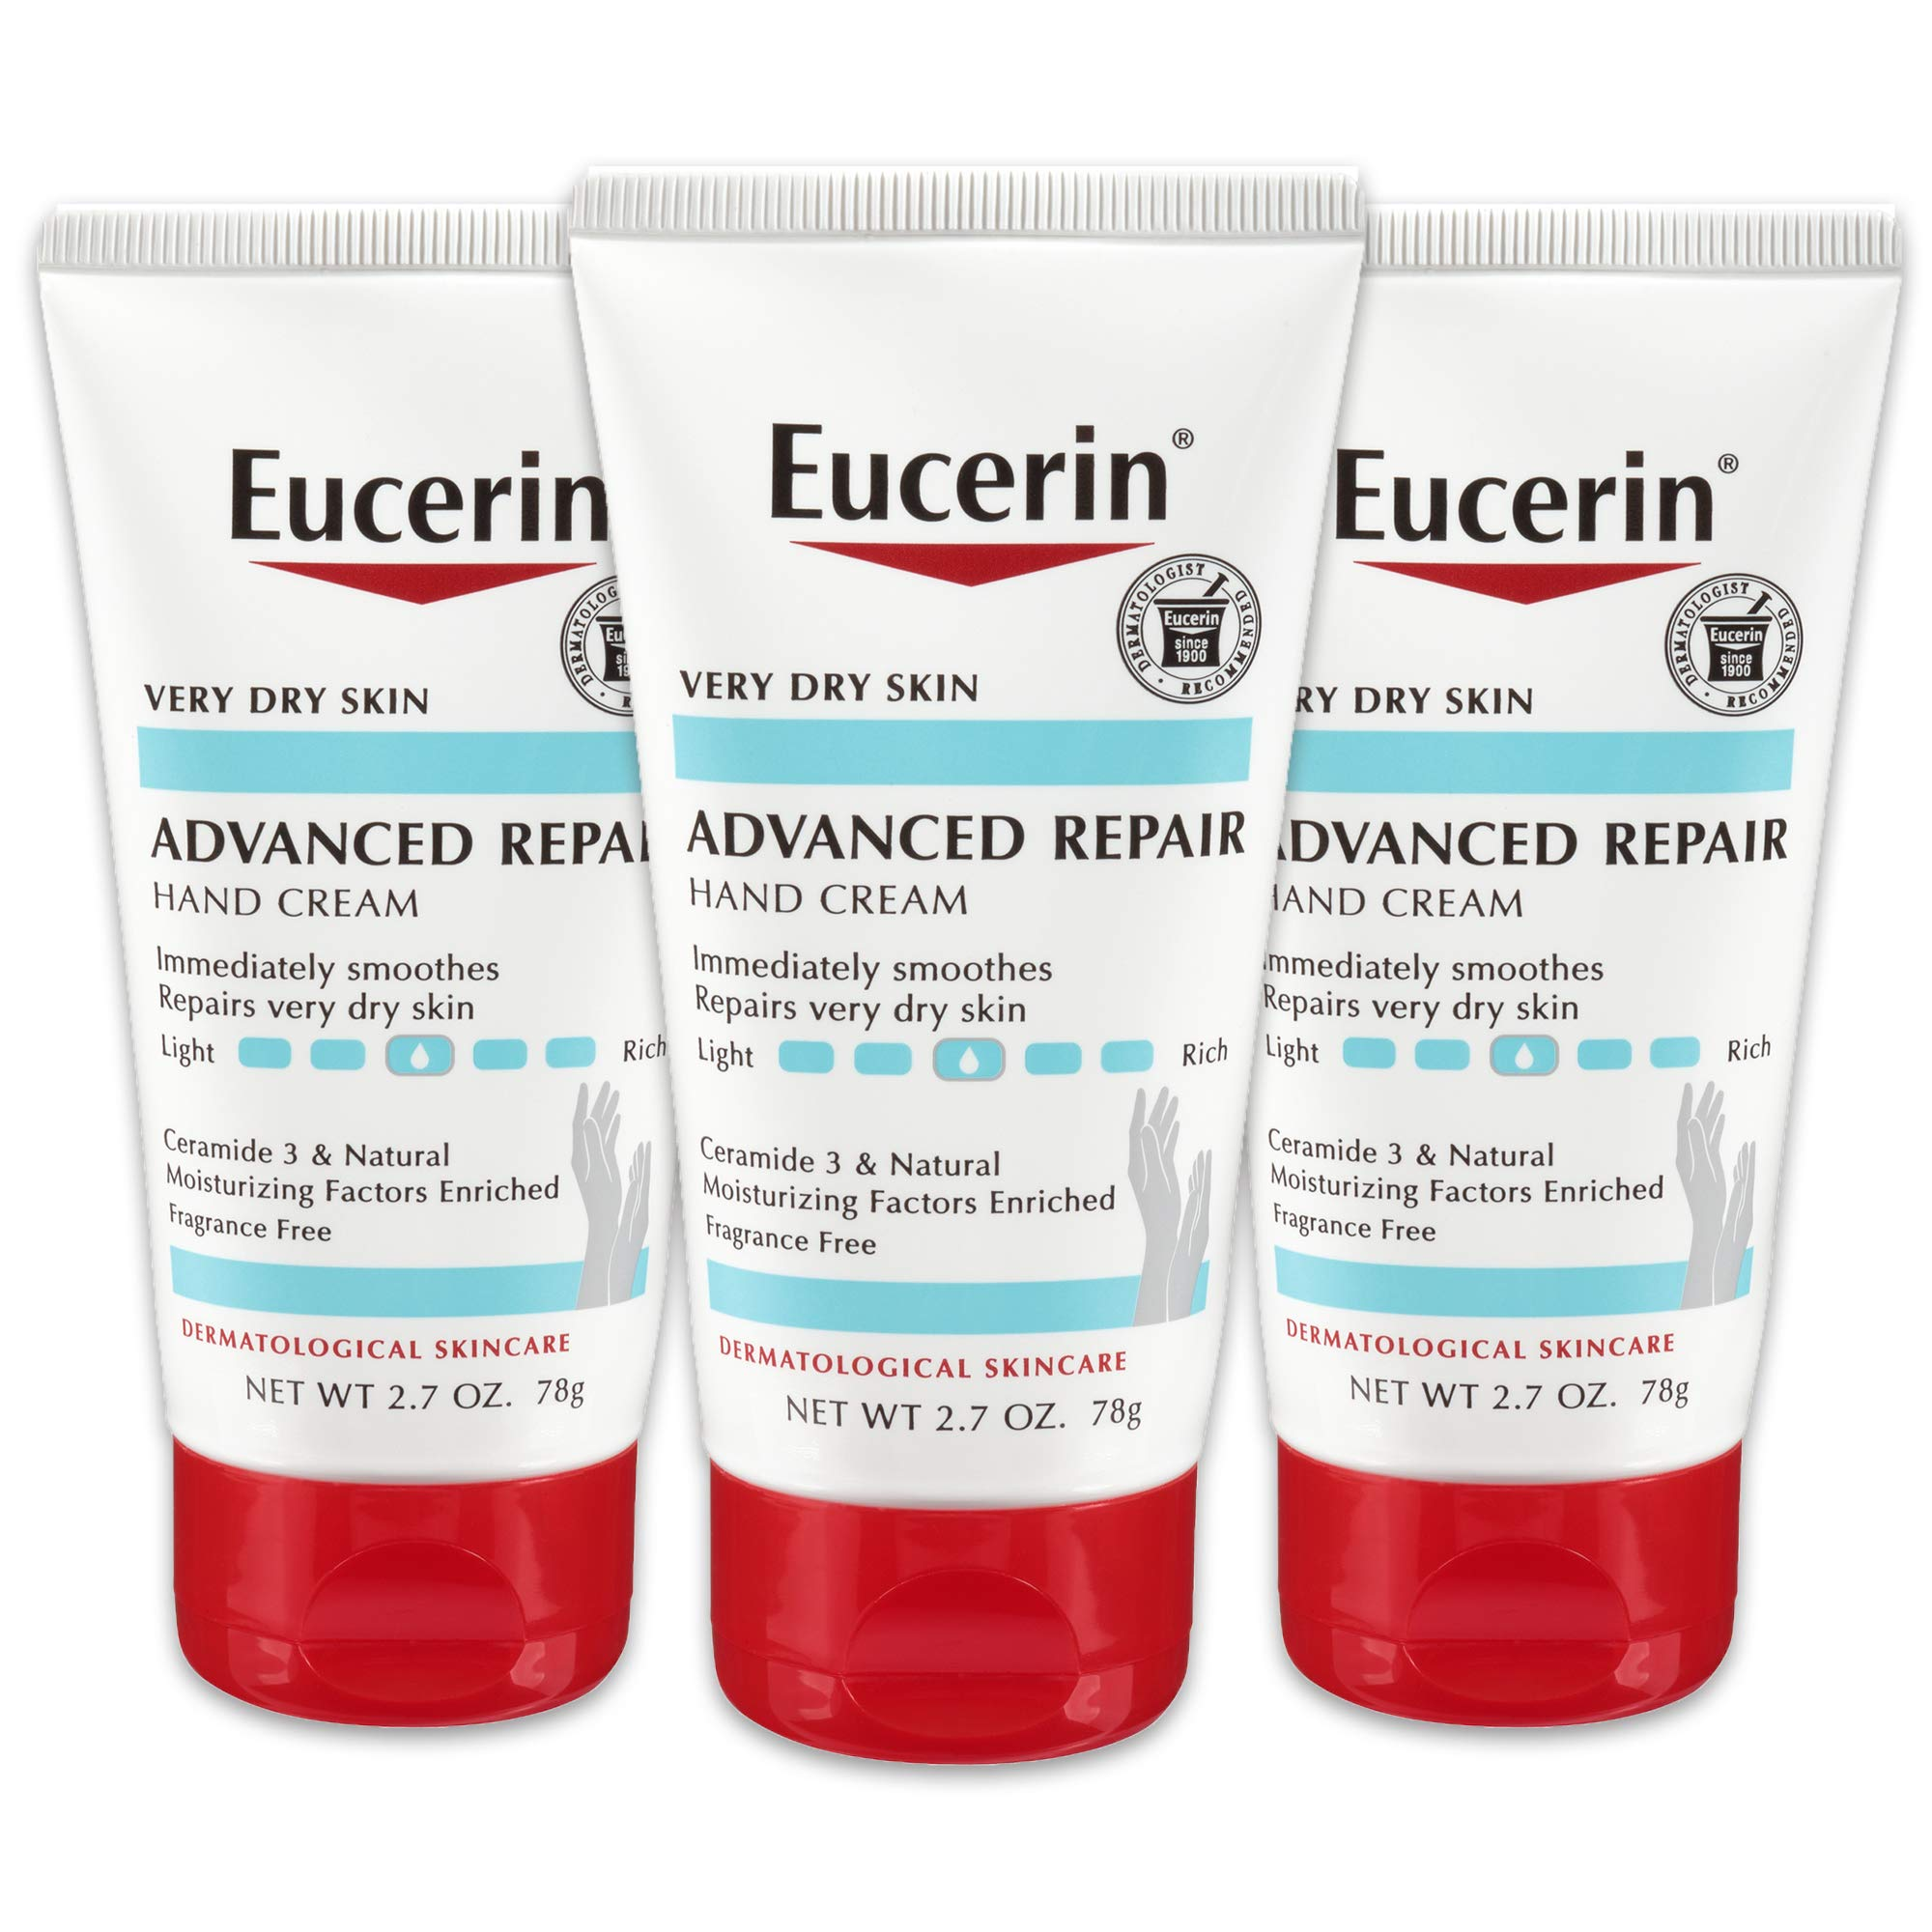 Eucerin Advanced Repair Hand Cream - Fragrance Free, Hand Lotion for Very Dry Skin - 2.7 oz Tube (Pack of 3) by Eucerin